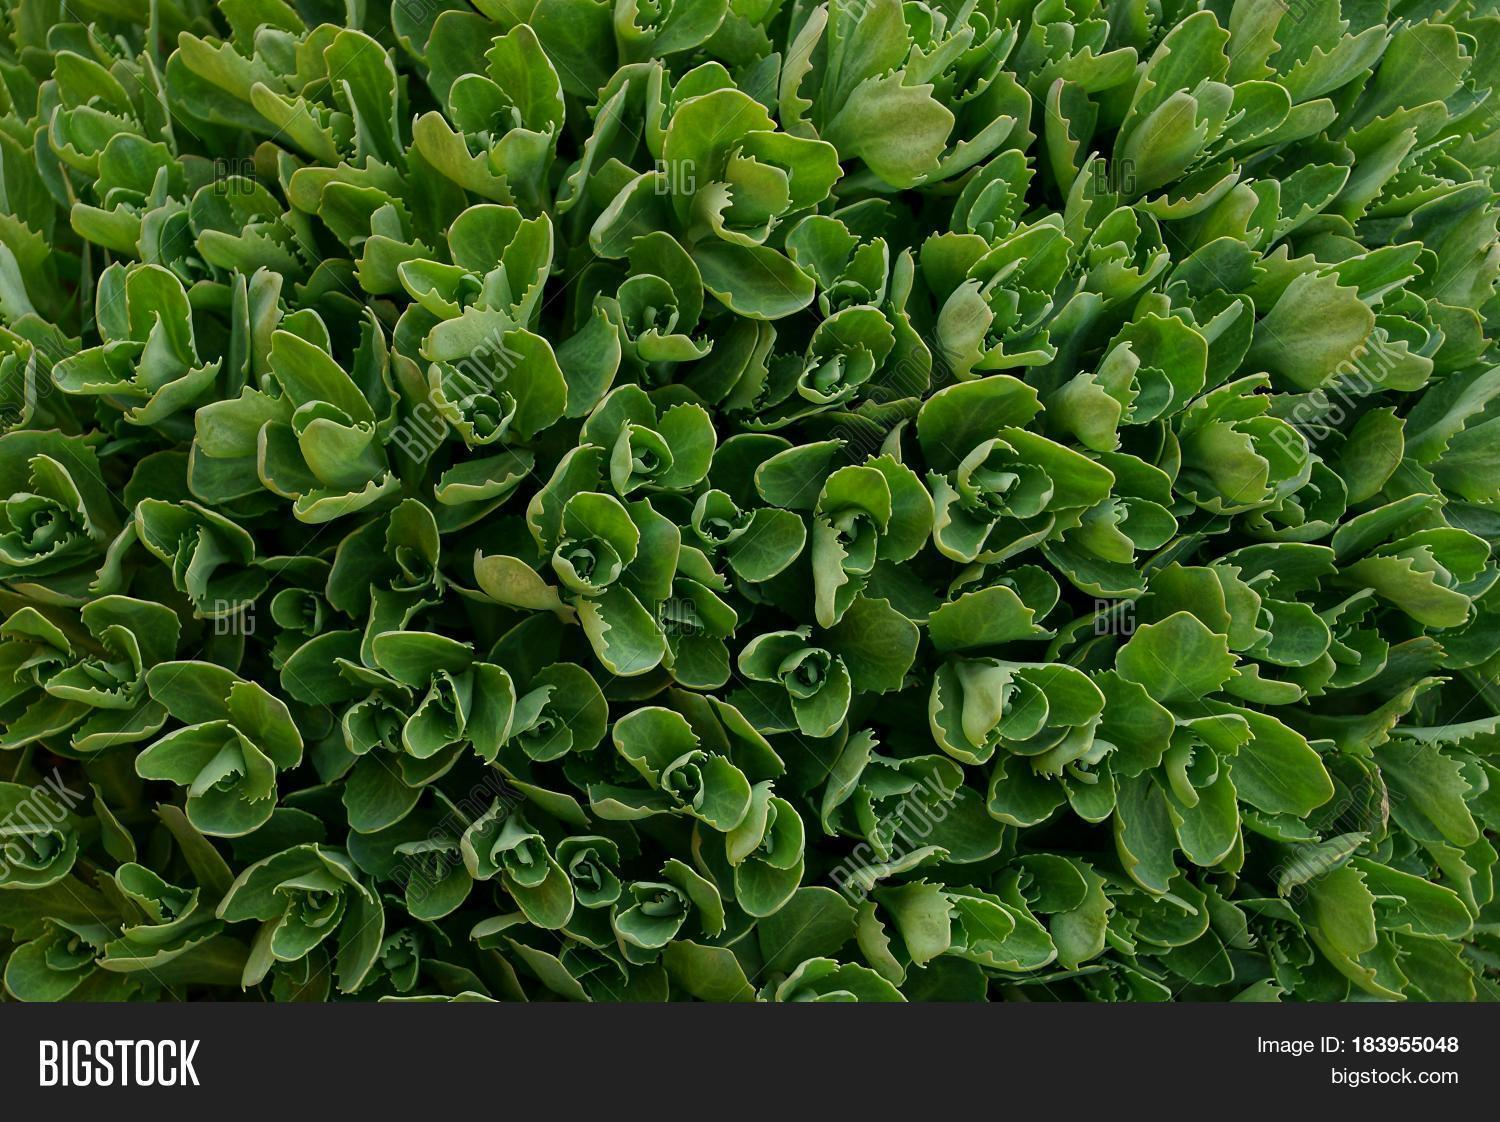 Green texture small plants garden image photo bigstock for Small green outdoor plants